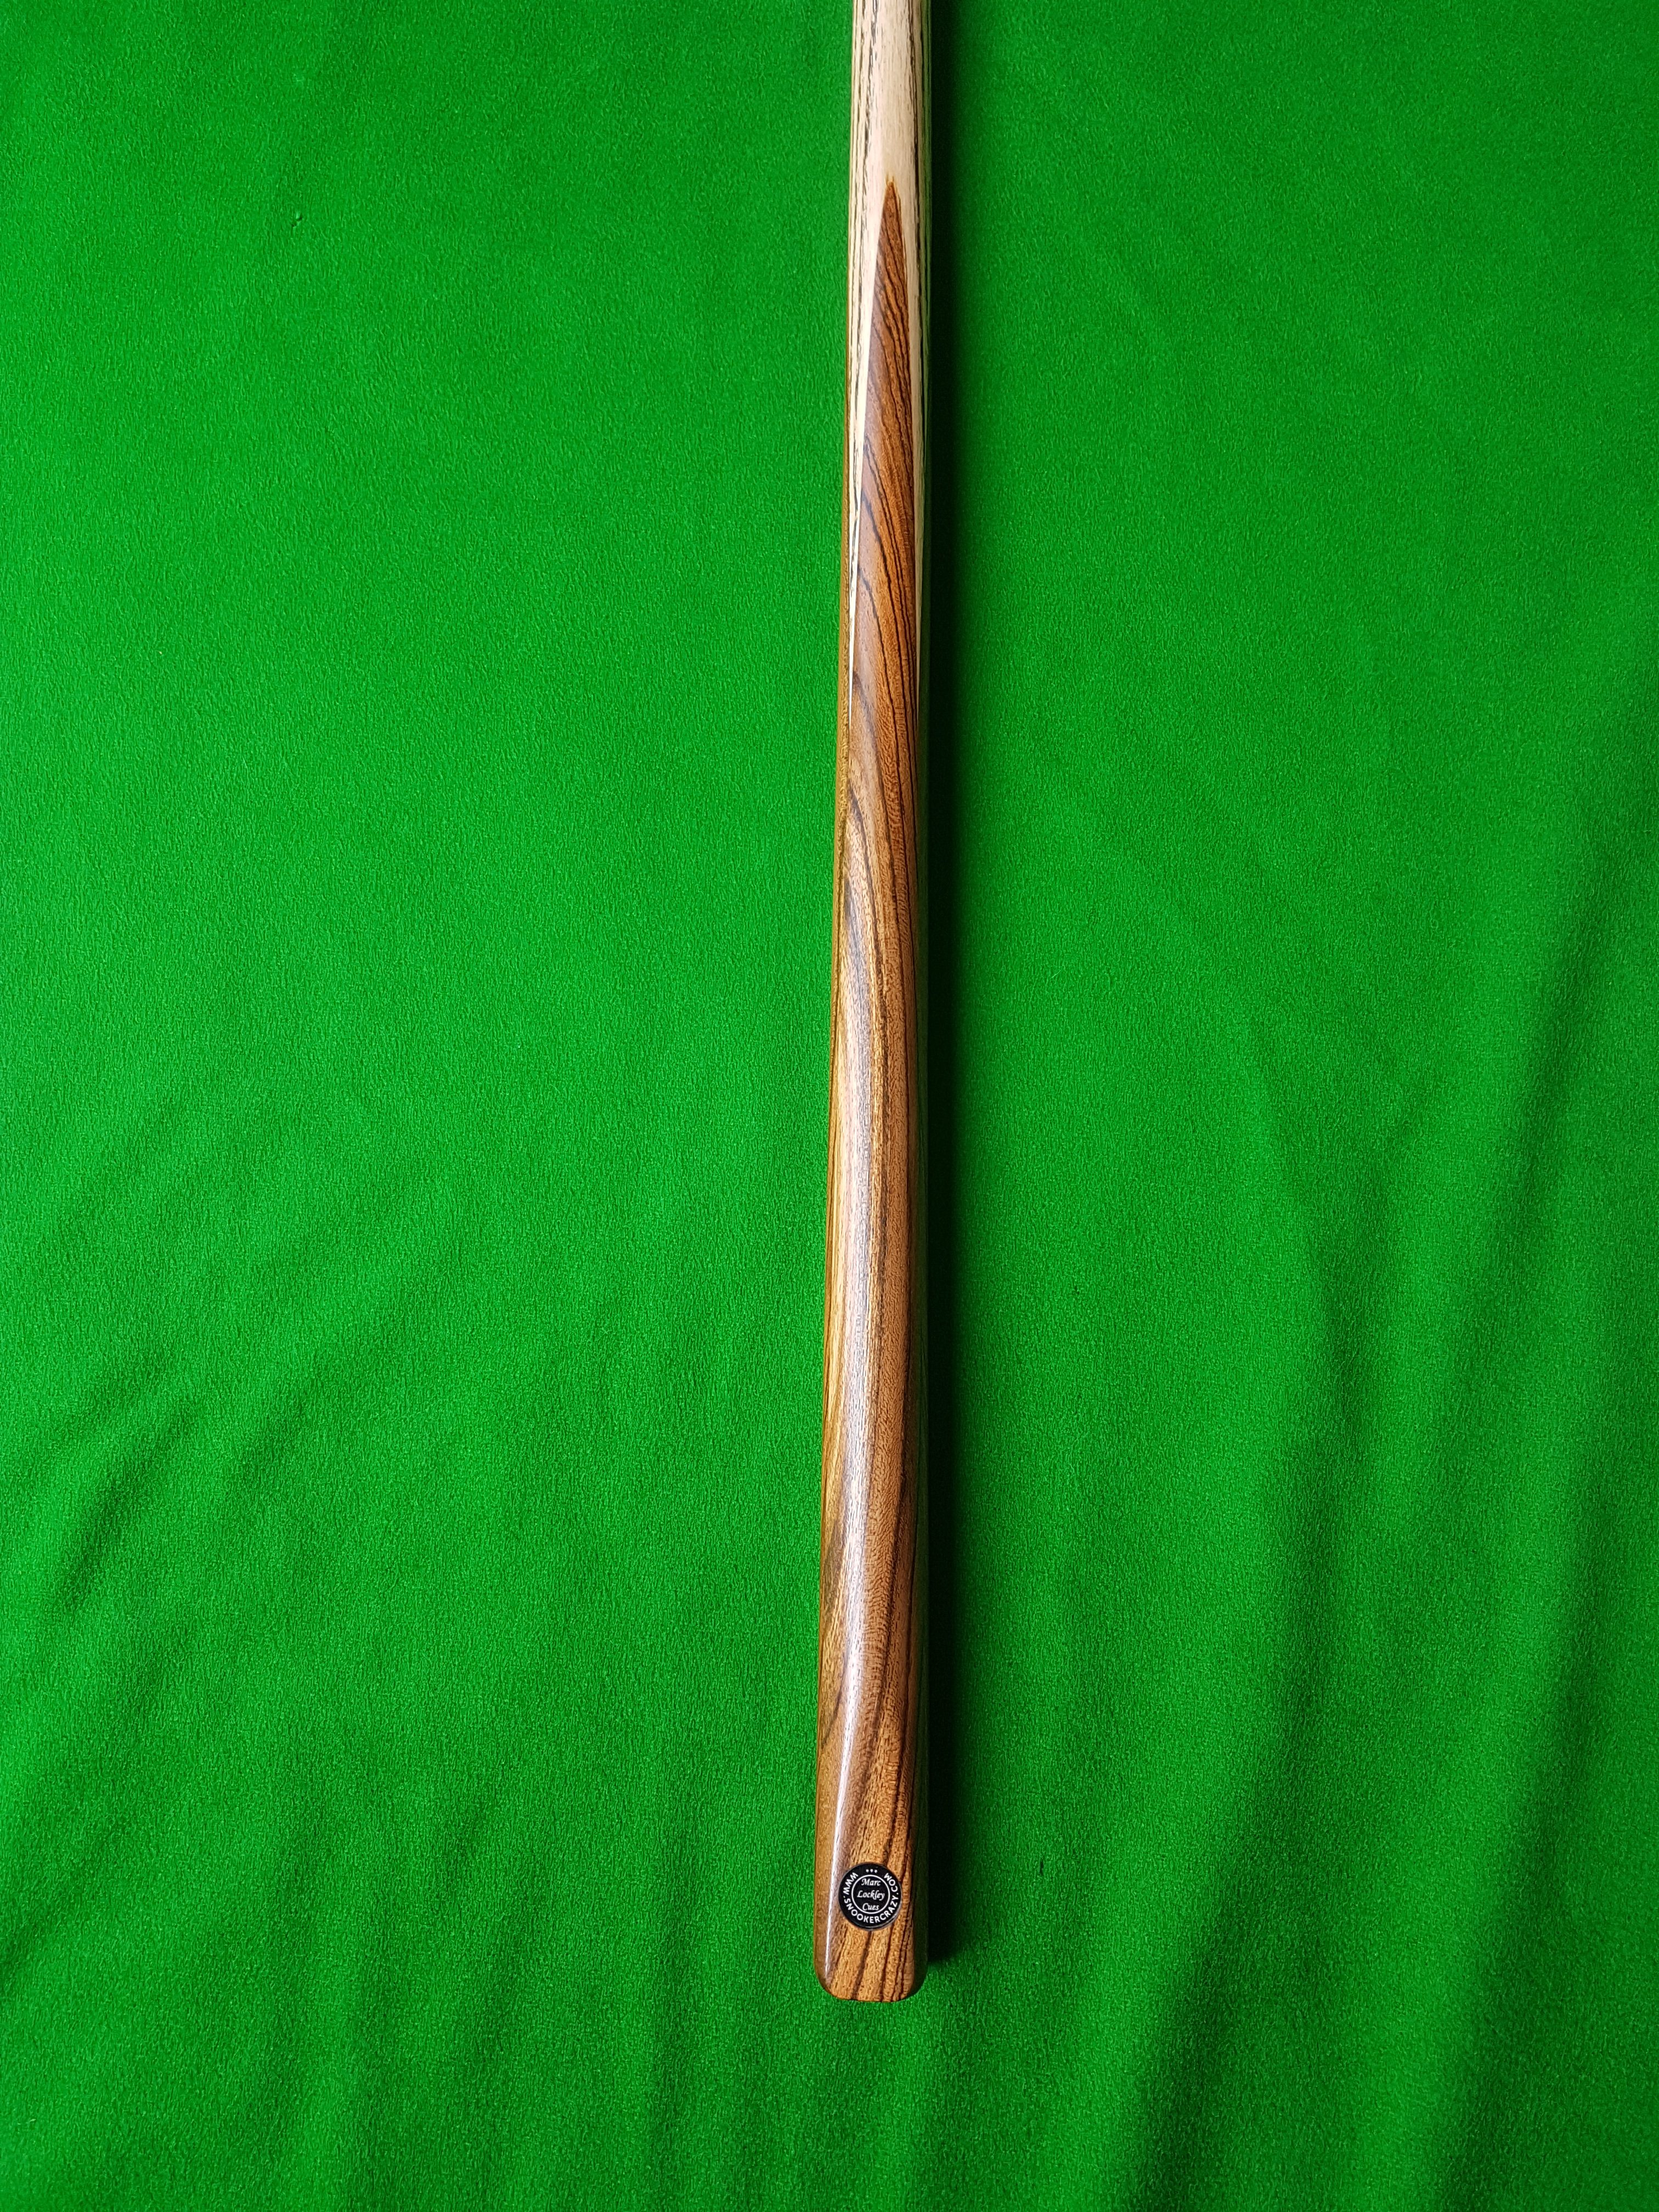 One Piece Bocotte Pool Cue